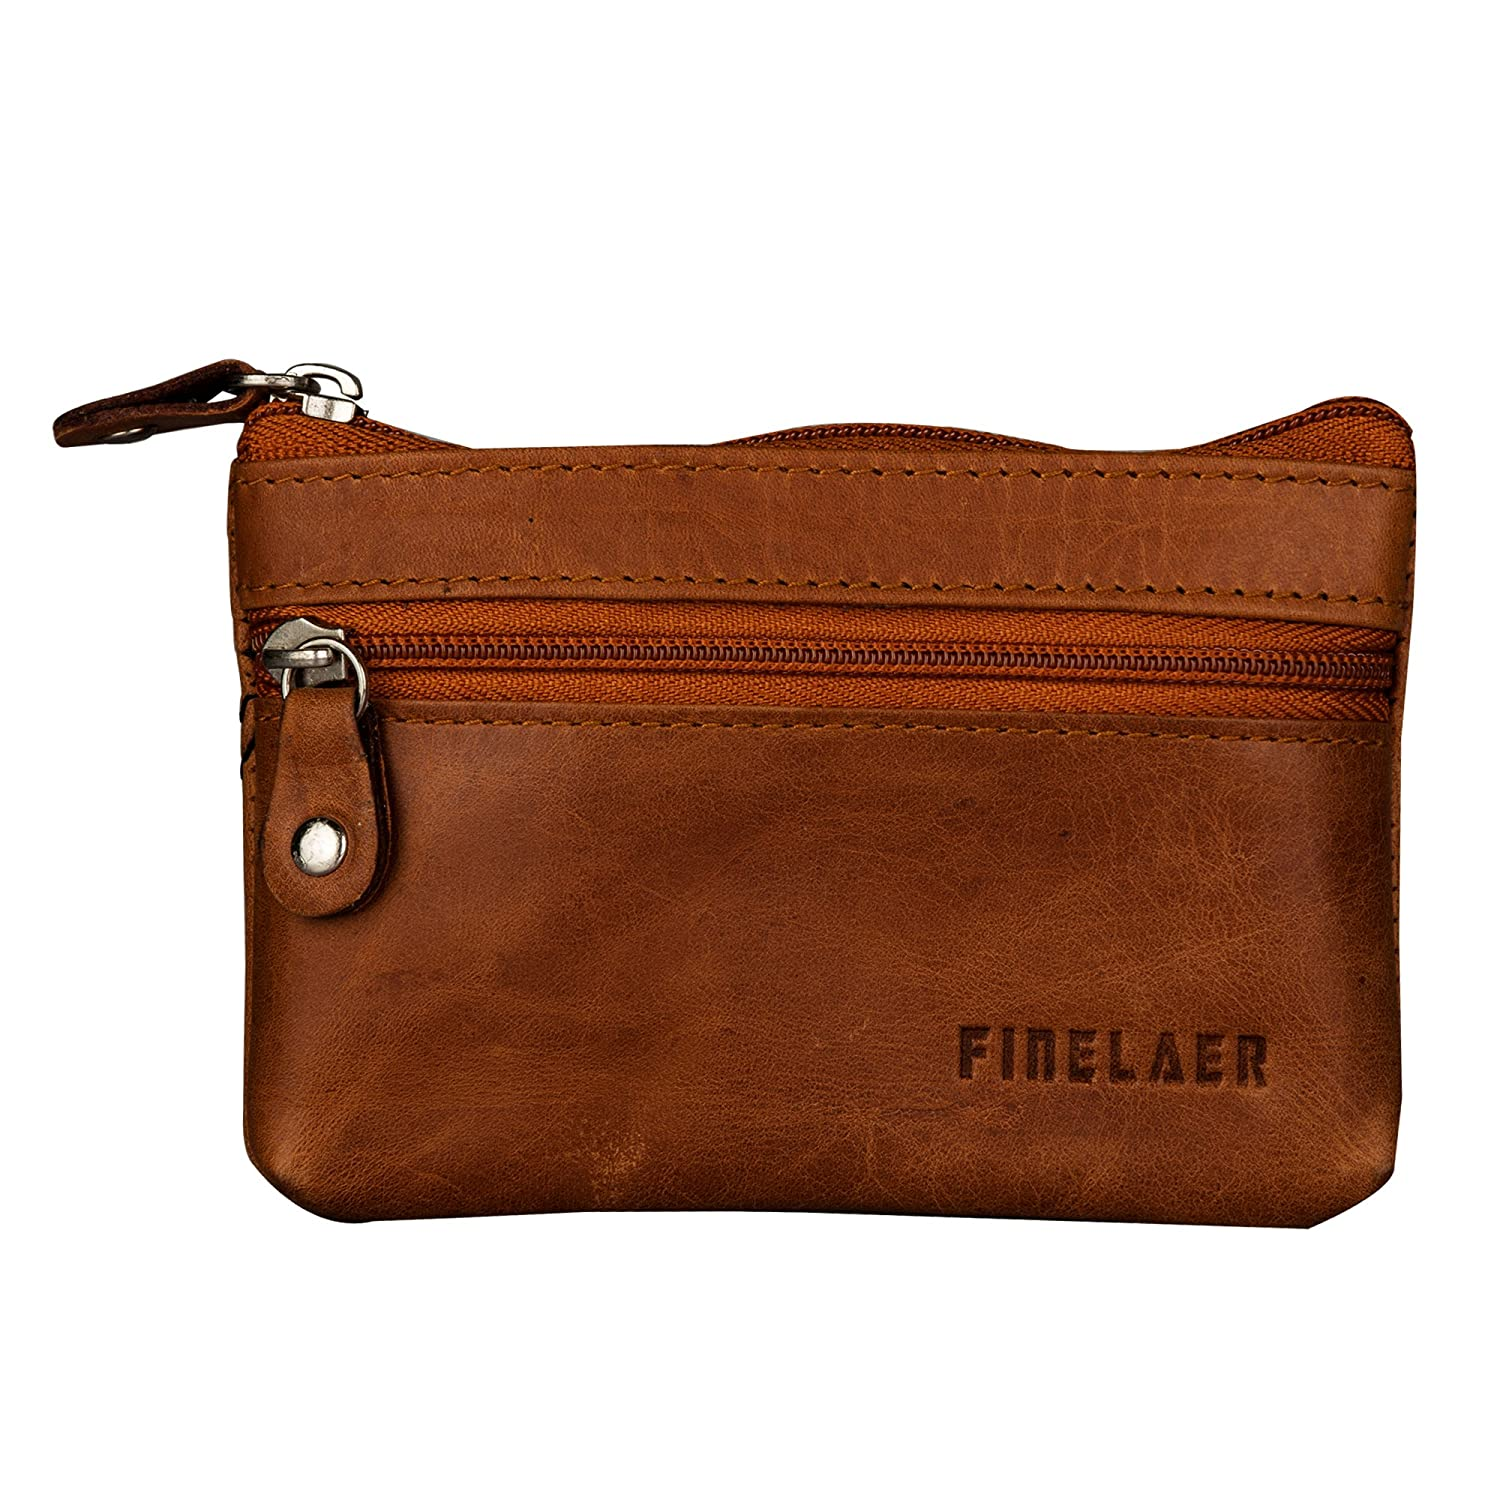 Finelaer Men Leather Coin Purse Pouch Wallet with Key Ring FINE-003A